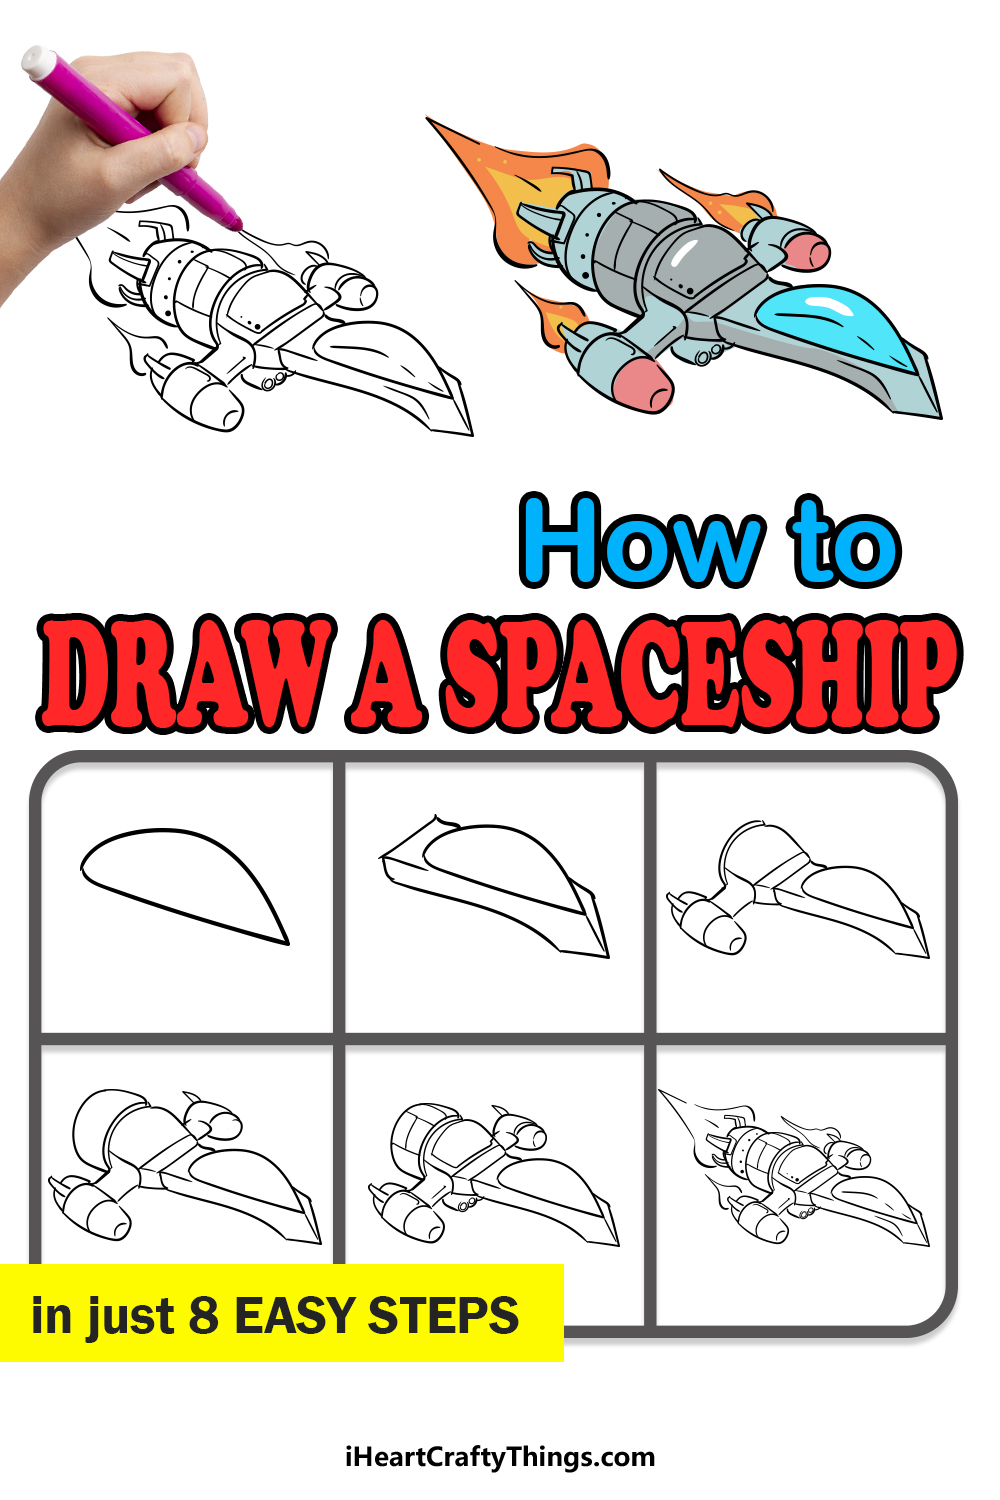 how to draw a spaceship in 8 easy steps